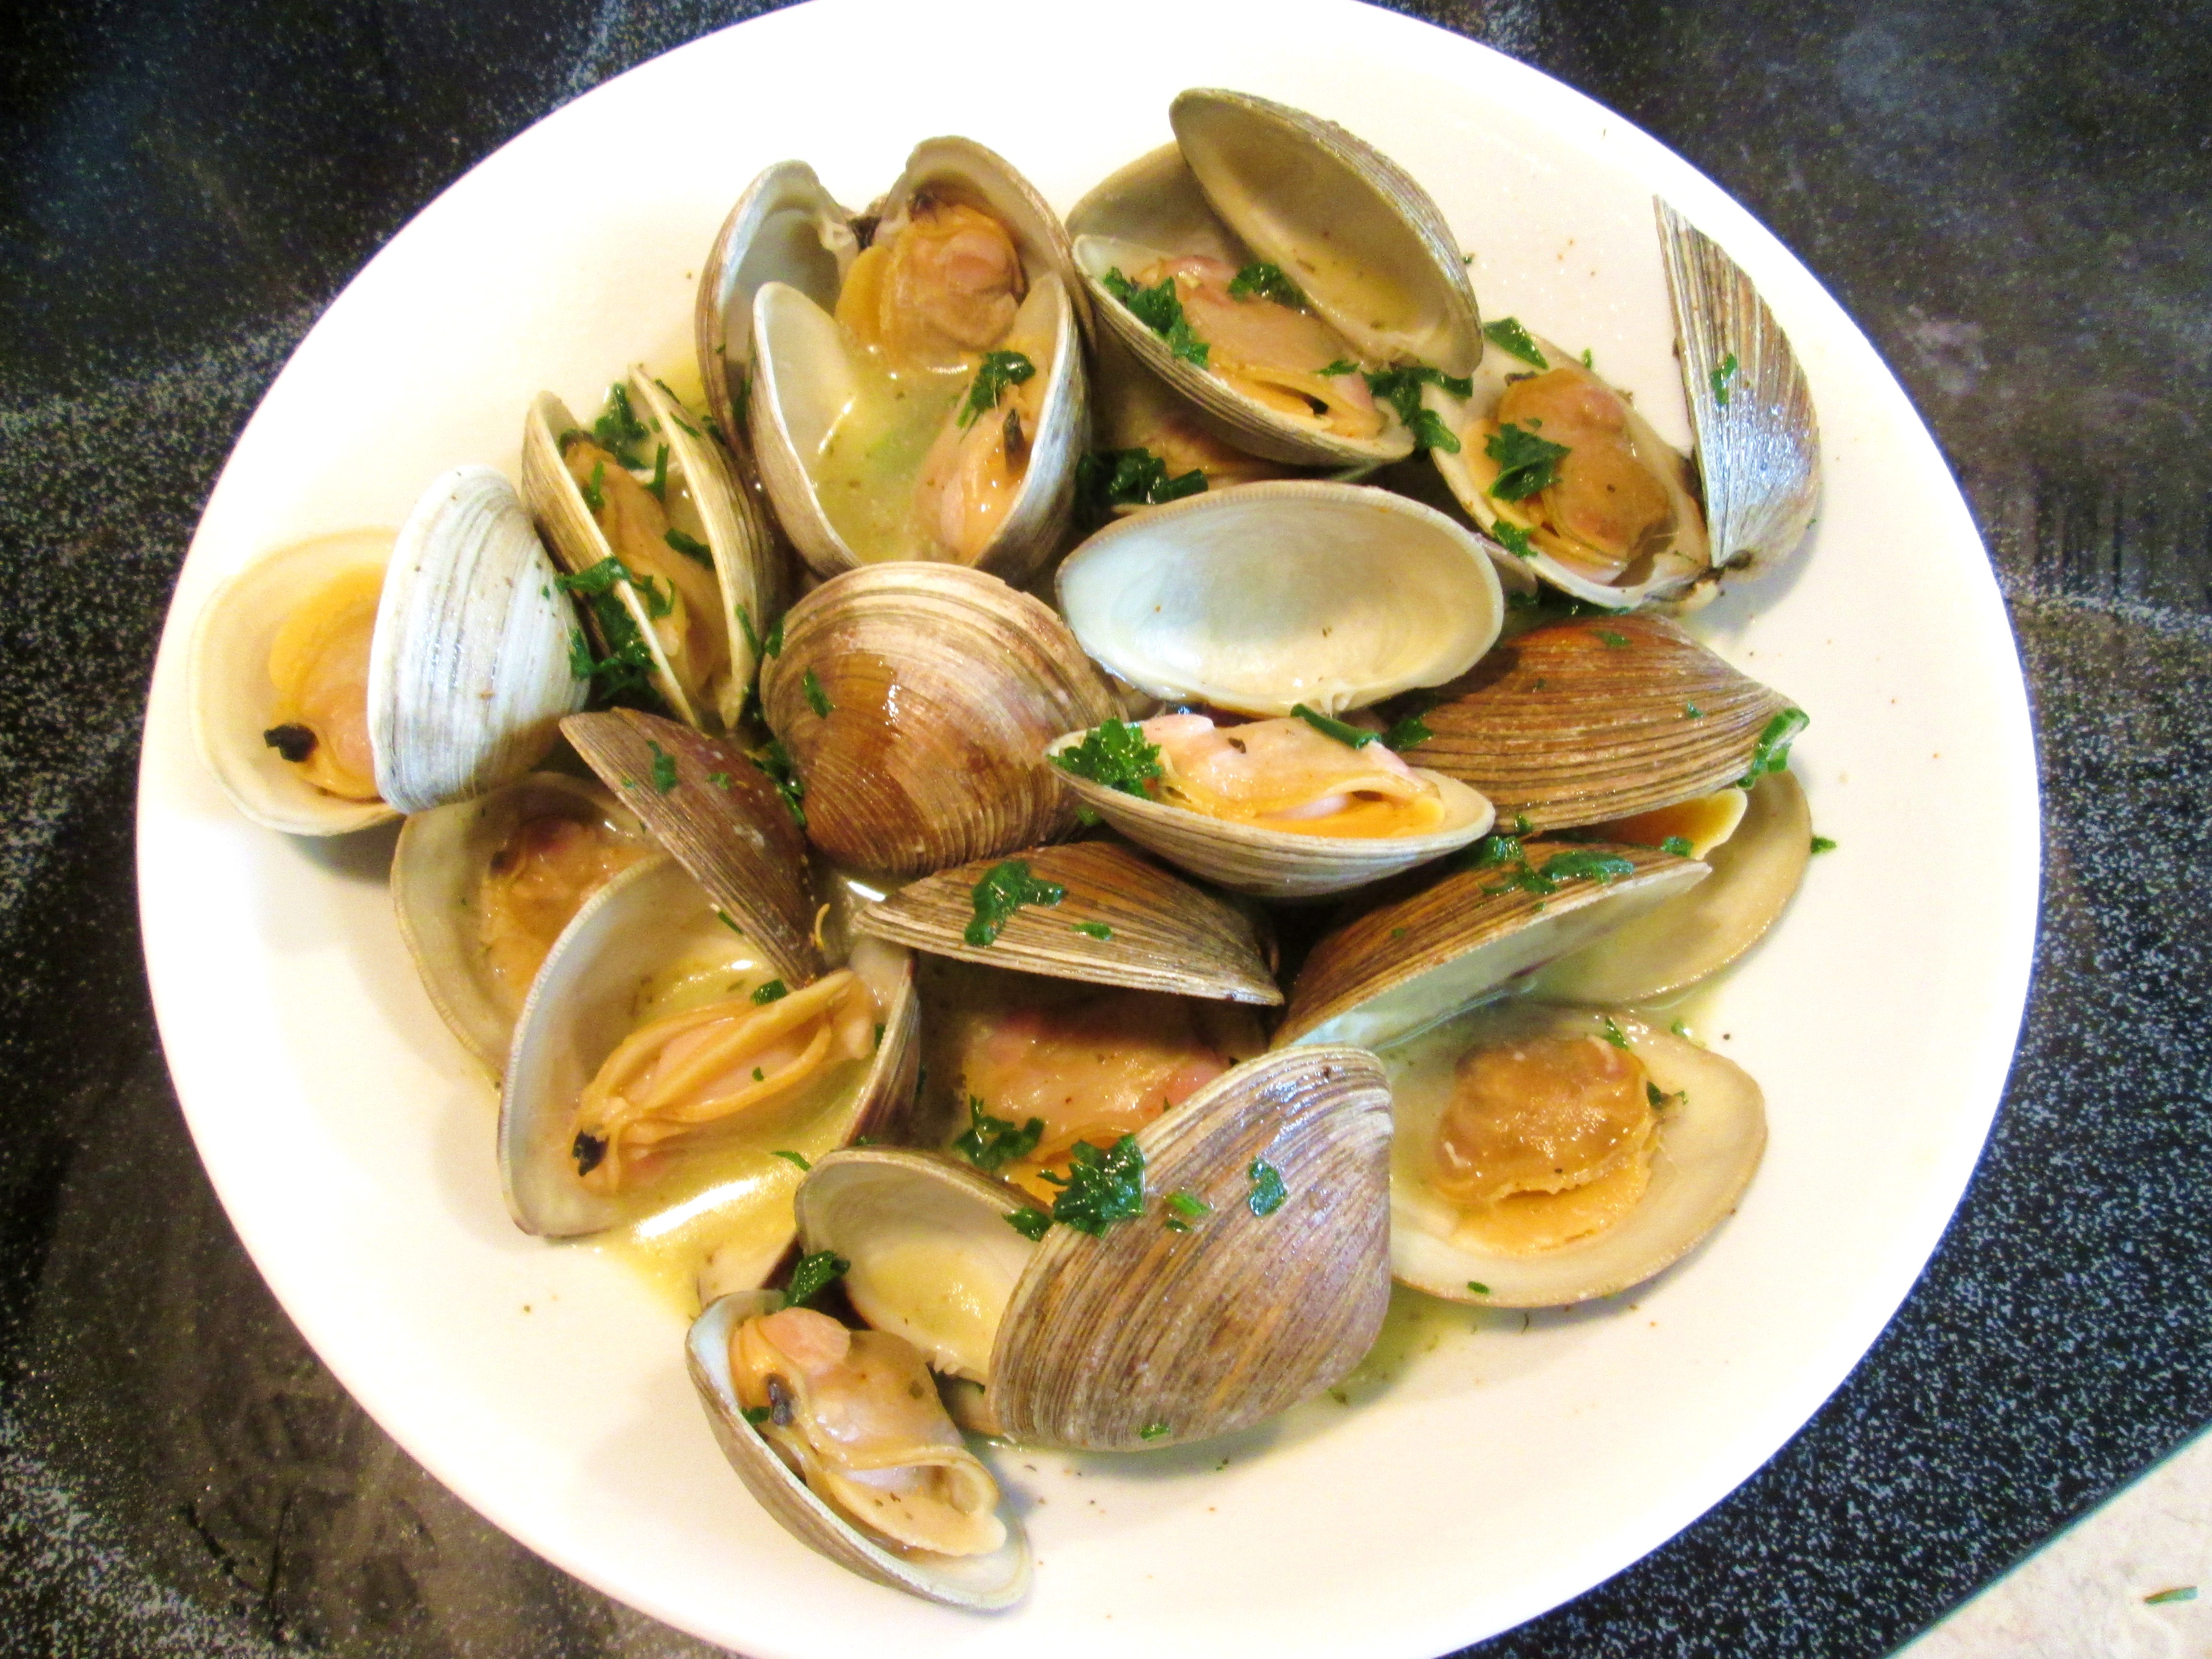 Next Up: Steamed Clams